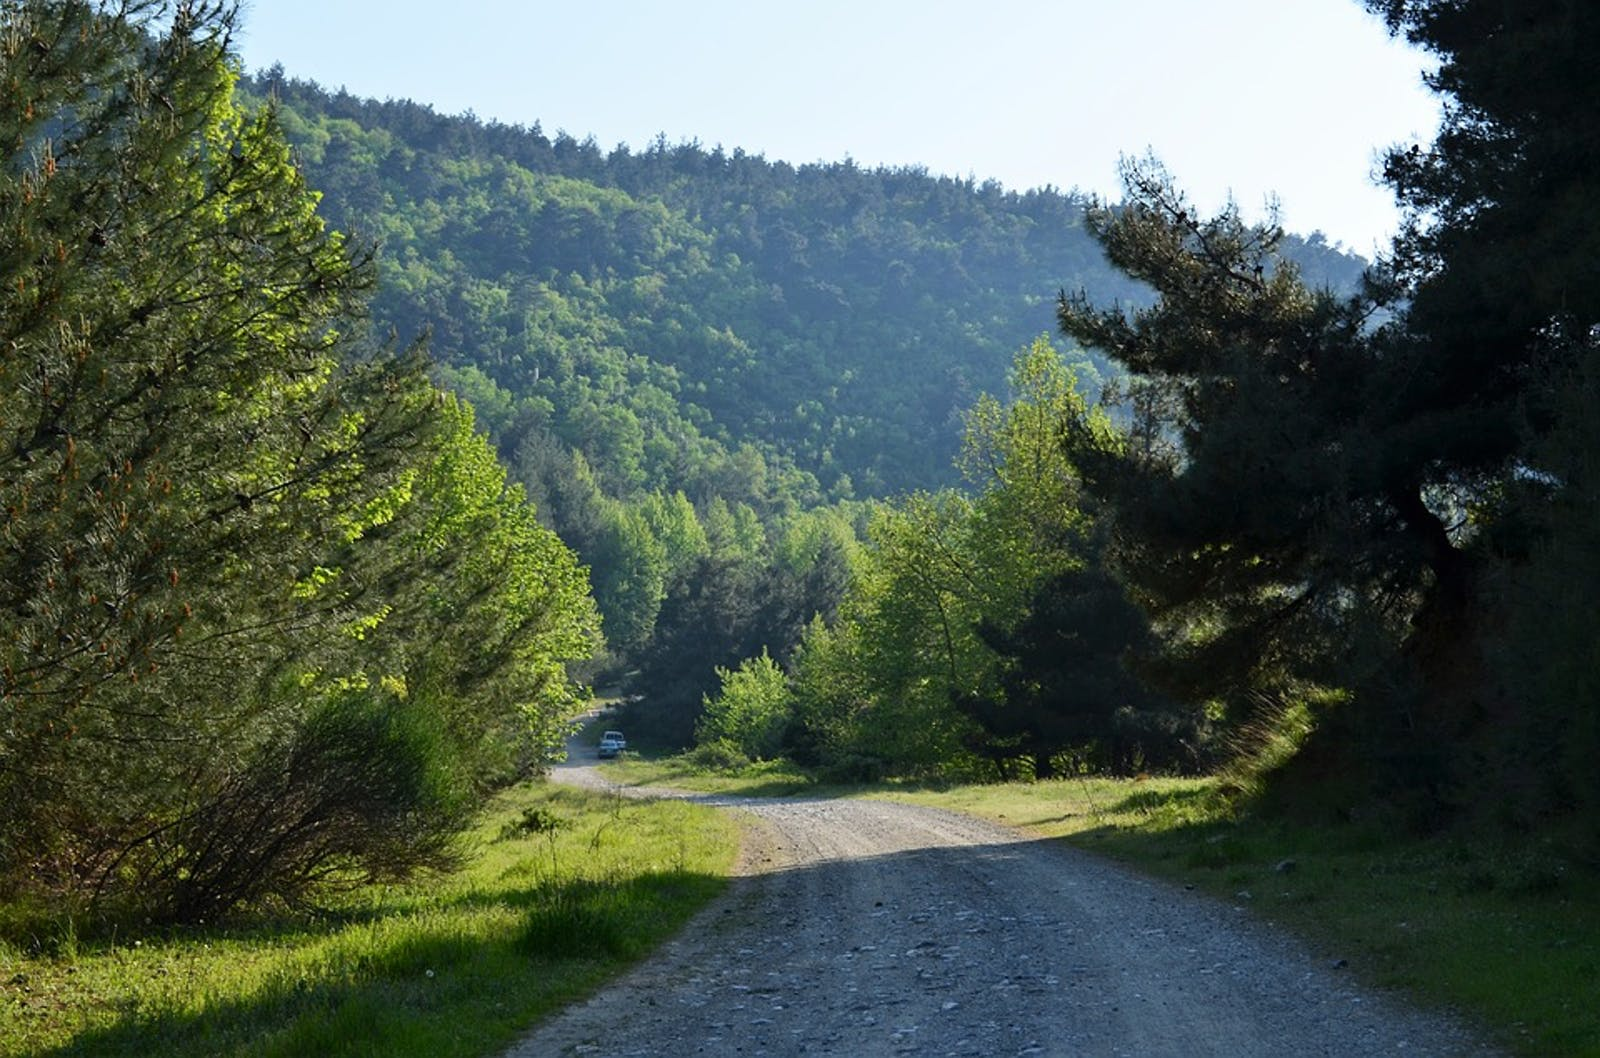 Anatolian Conifer and Deciduous Mixed Forests